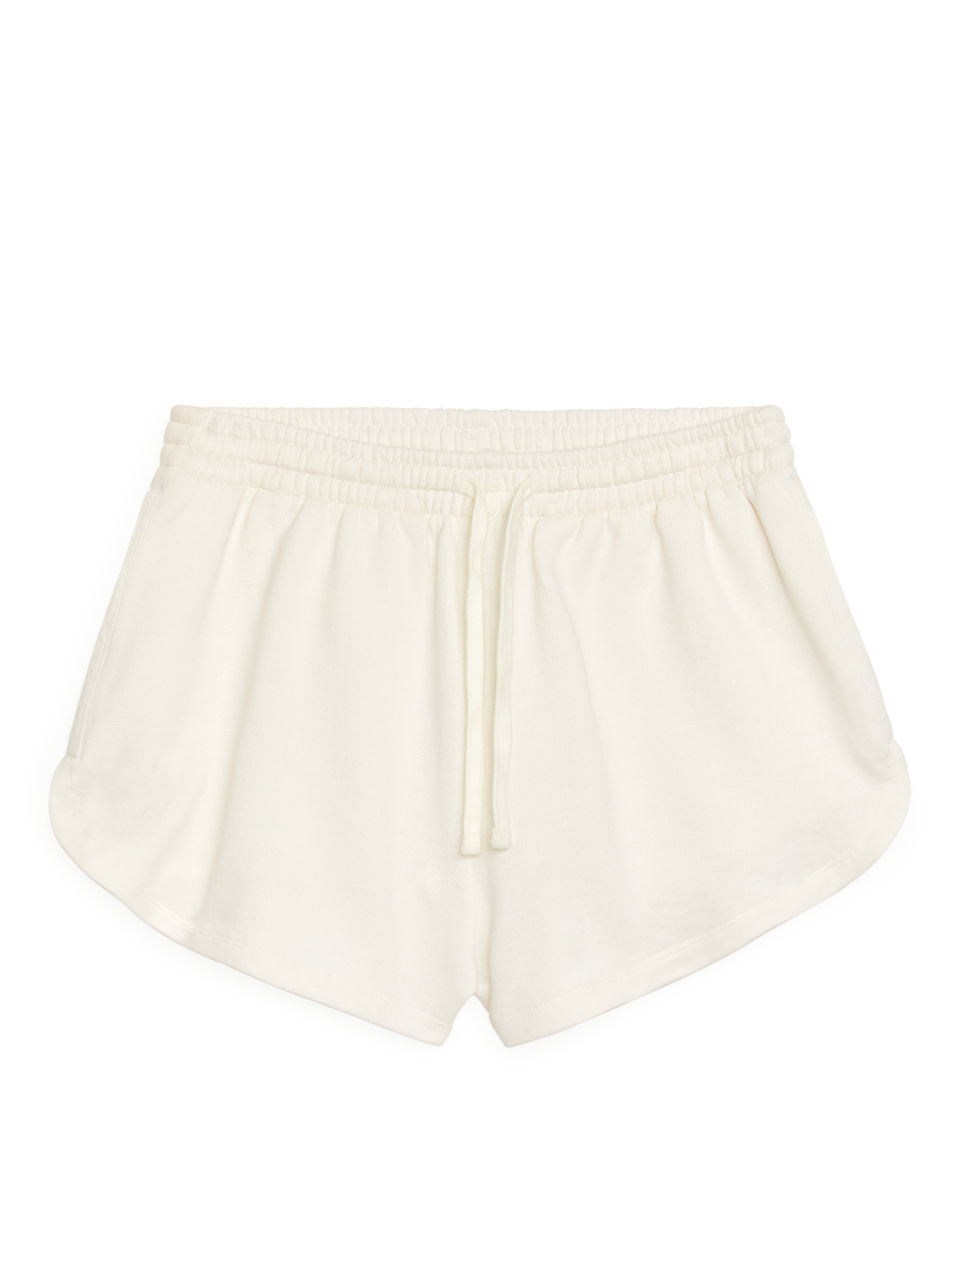 French Terry Shorts - White